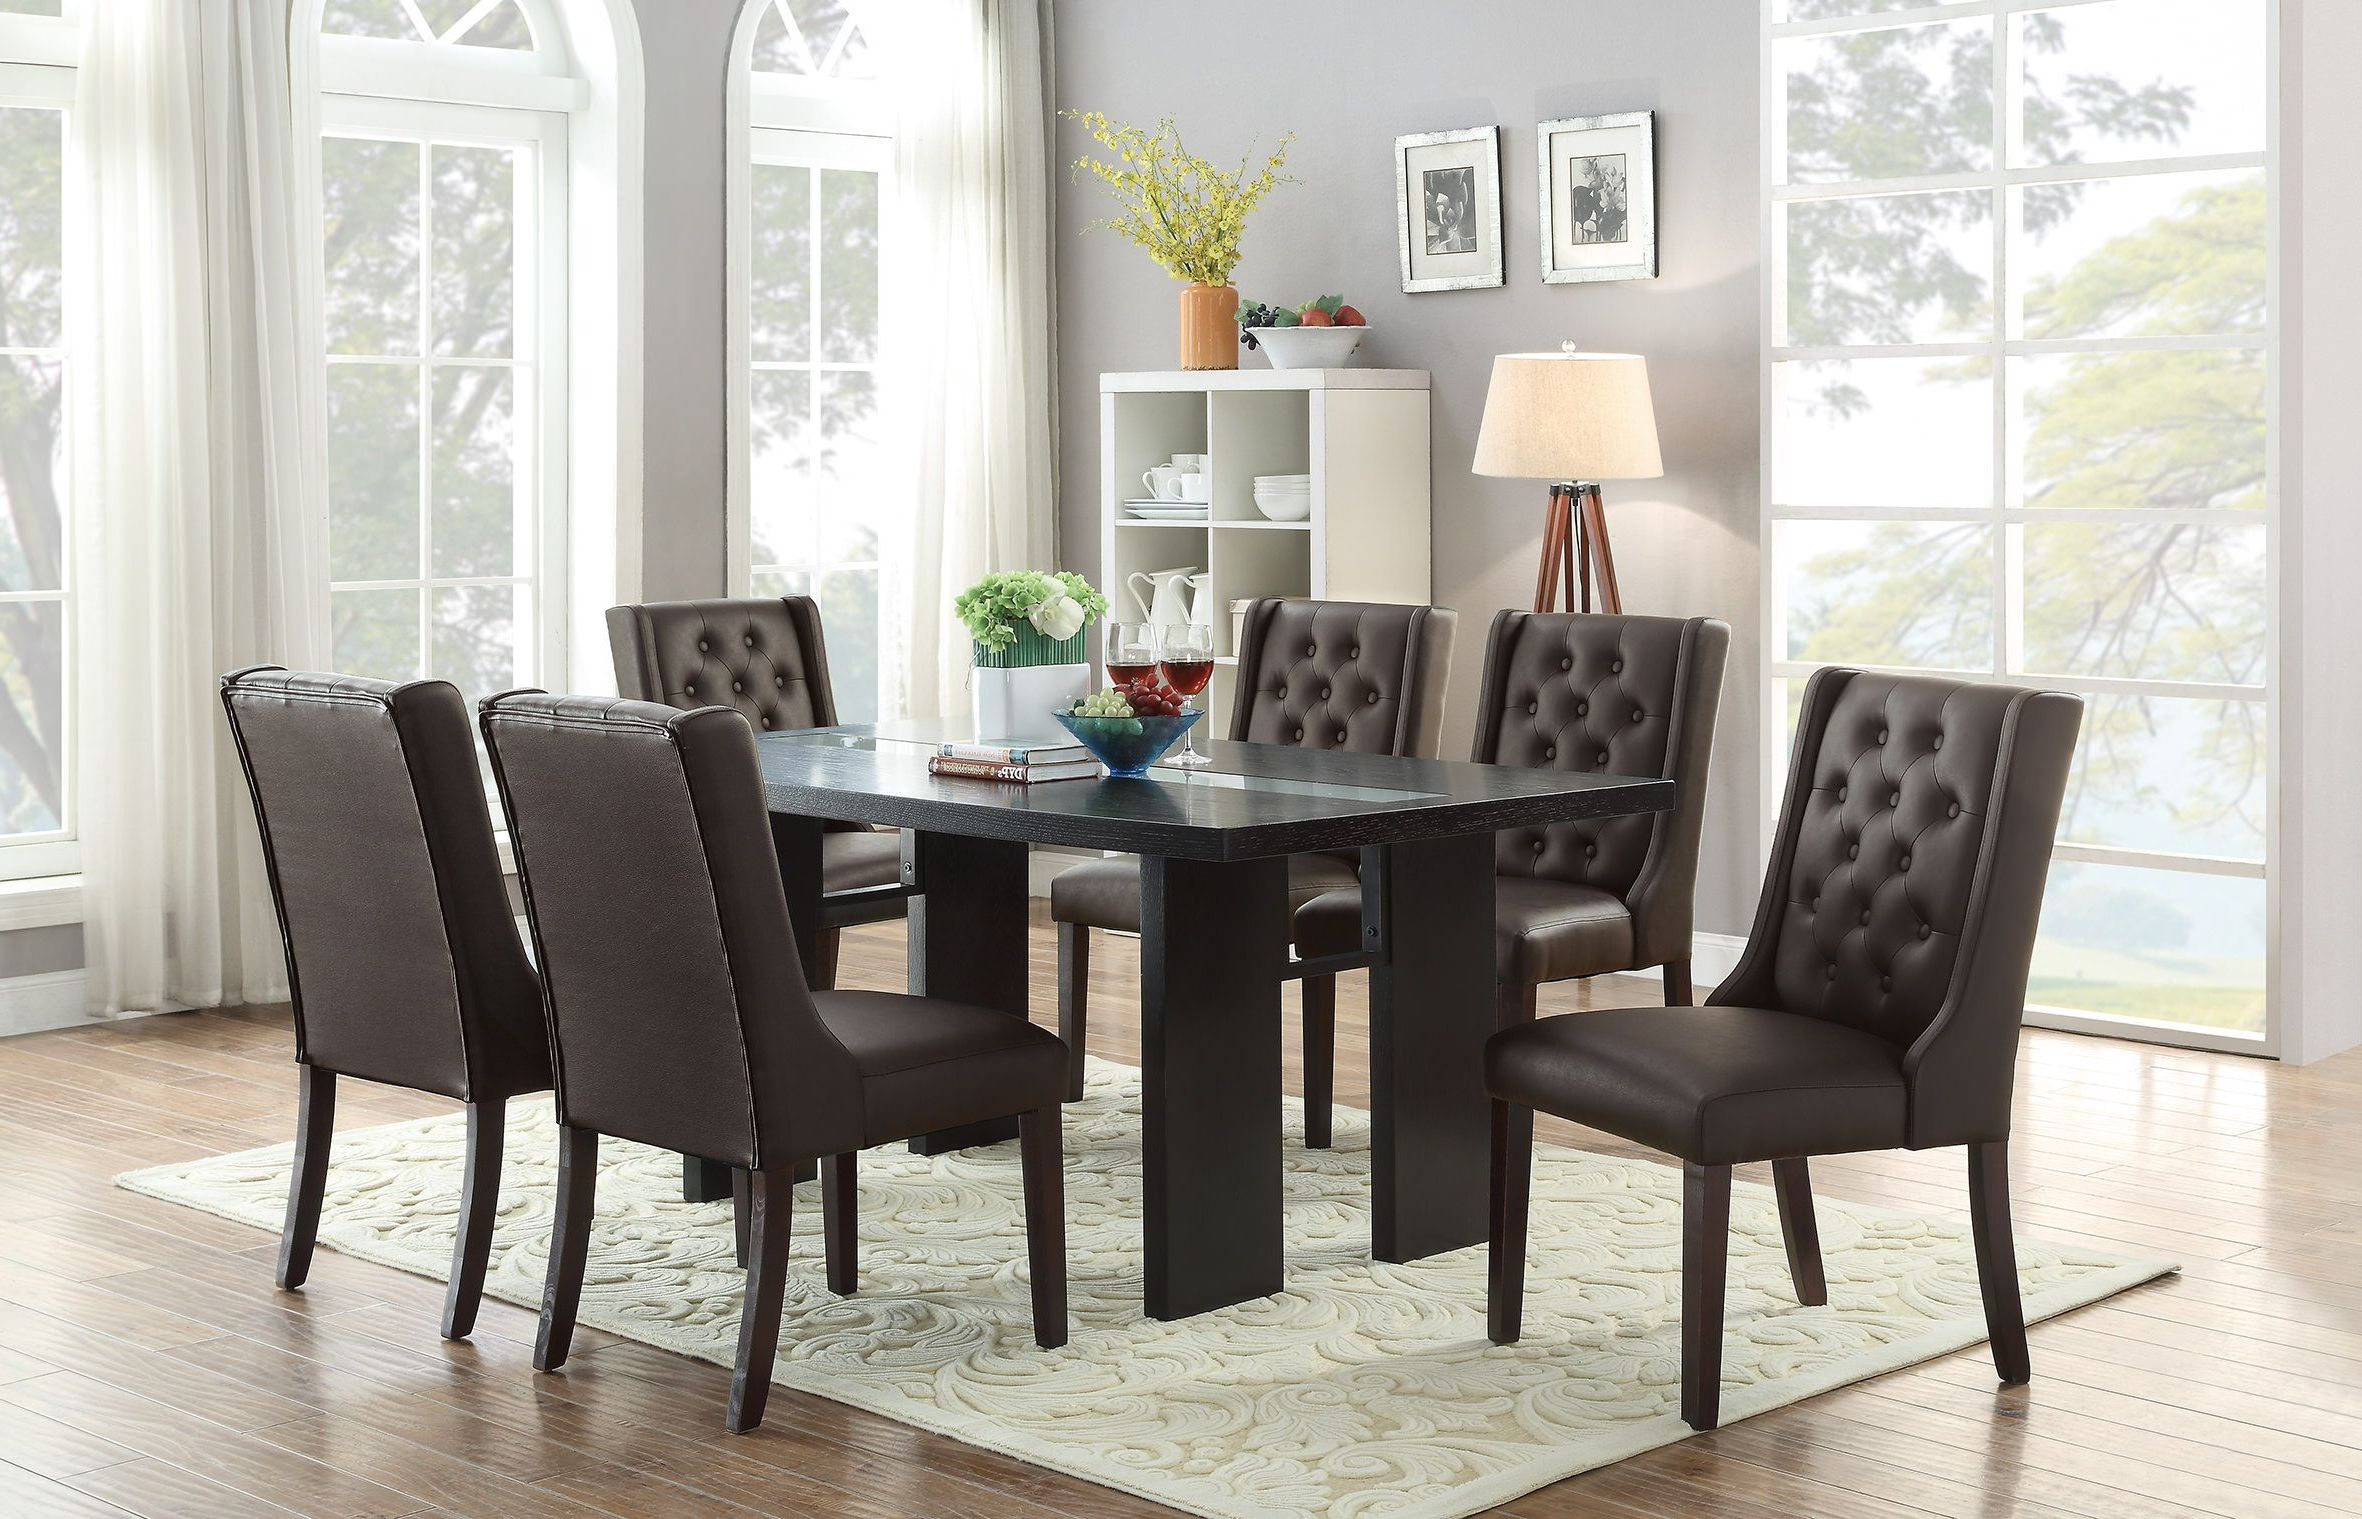 2020 F1501 Espresso Dining Chair (Set Of 2)Poundex In 2019 Inside Penelope 3 Piece Counter Height Wood Dining Sets (View 1 of 25)